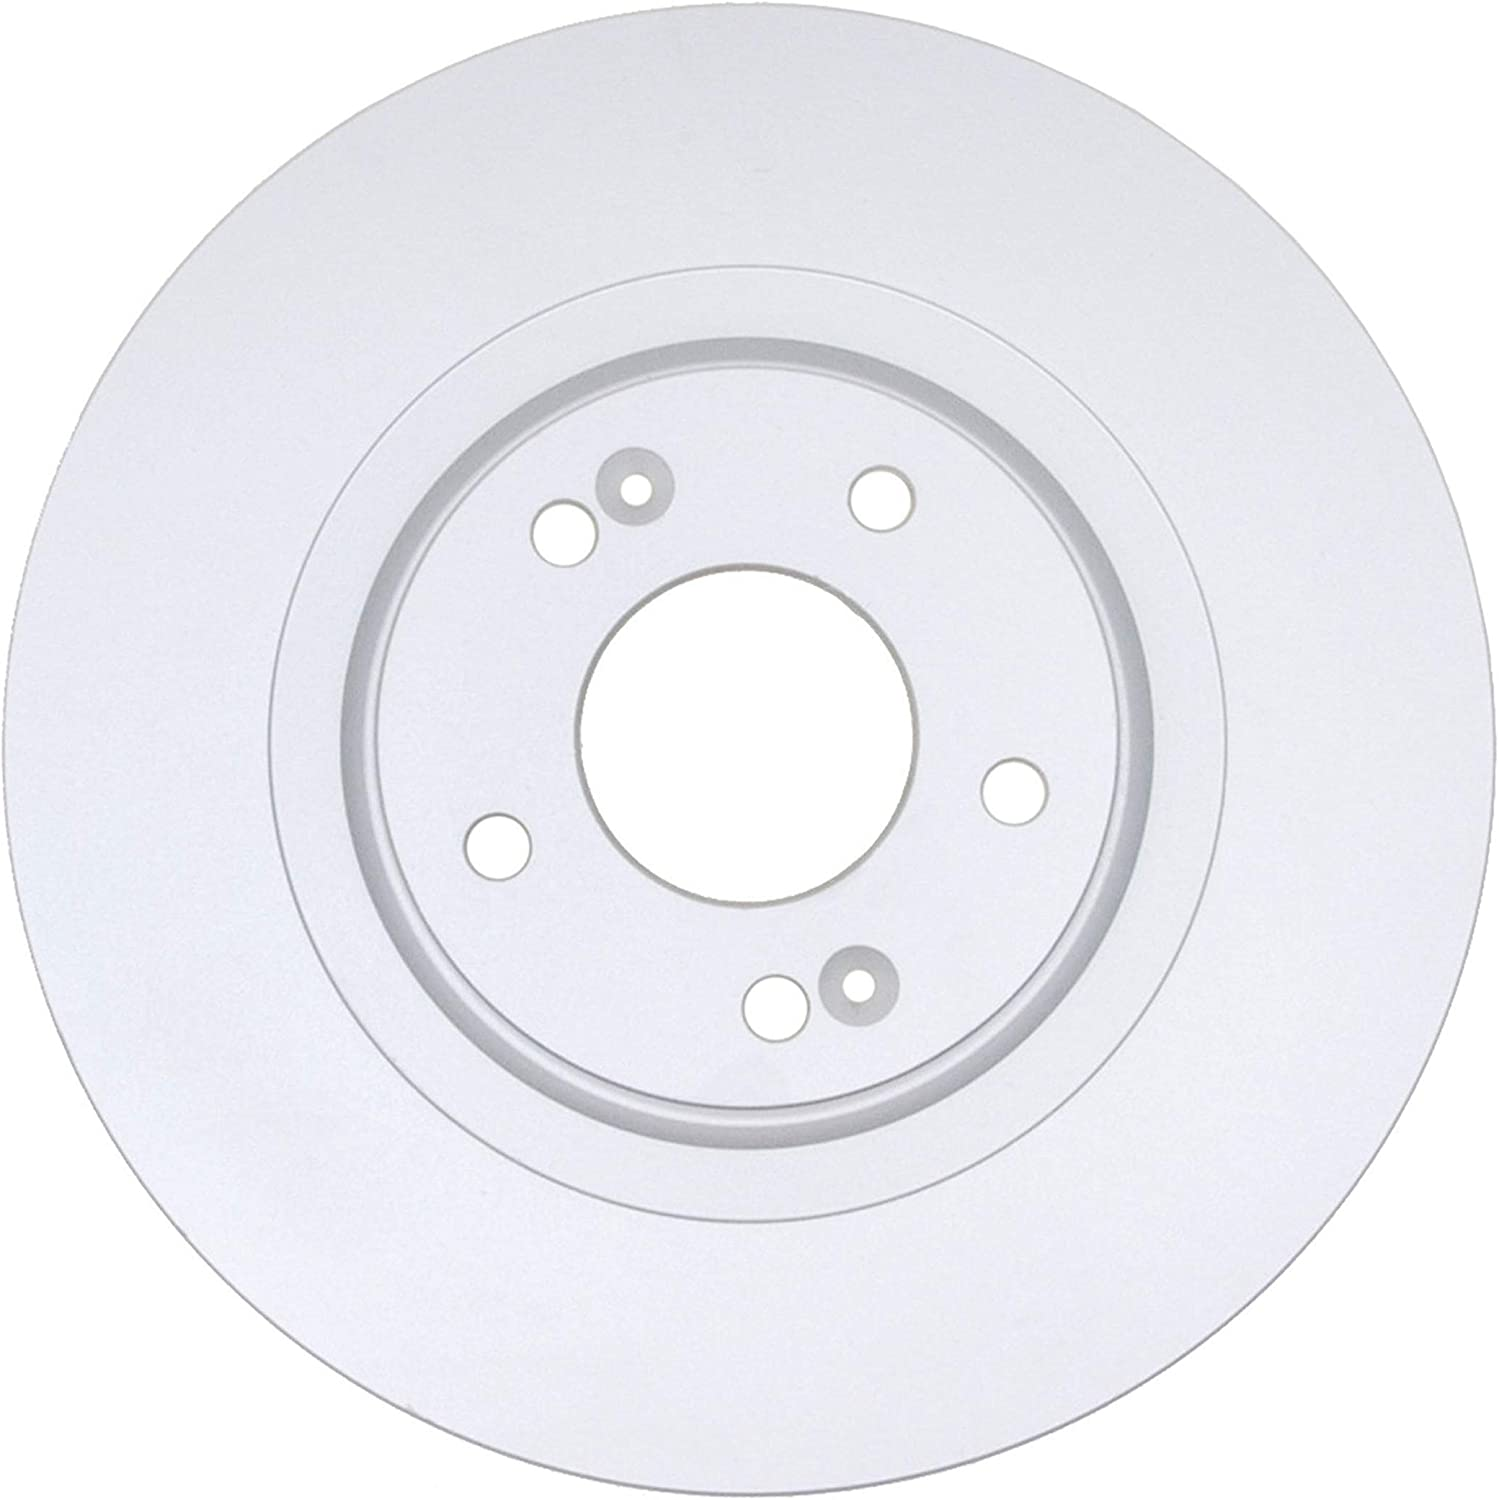 Raybestos 981010FZN Rust Prevention Technology Coated Rotor Brake Rotor 1 Pack